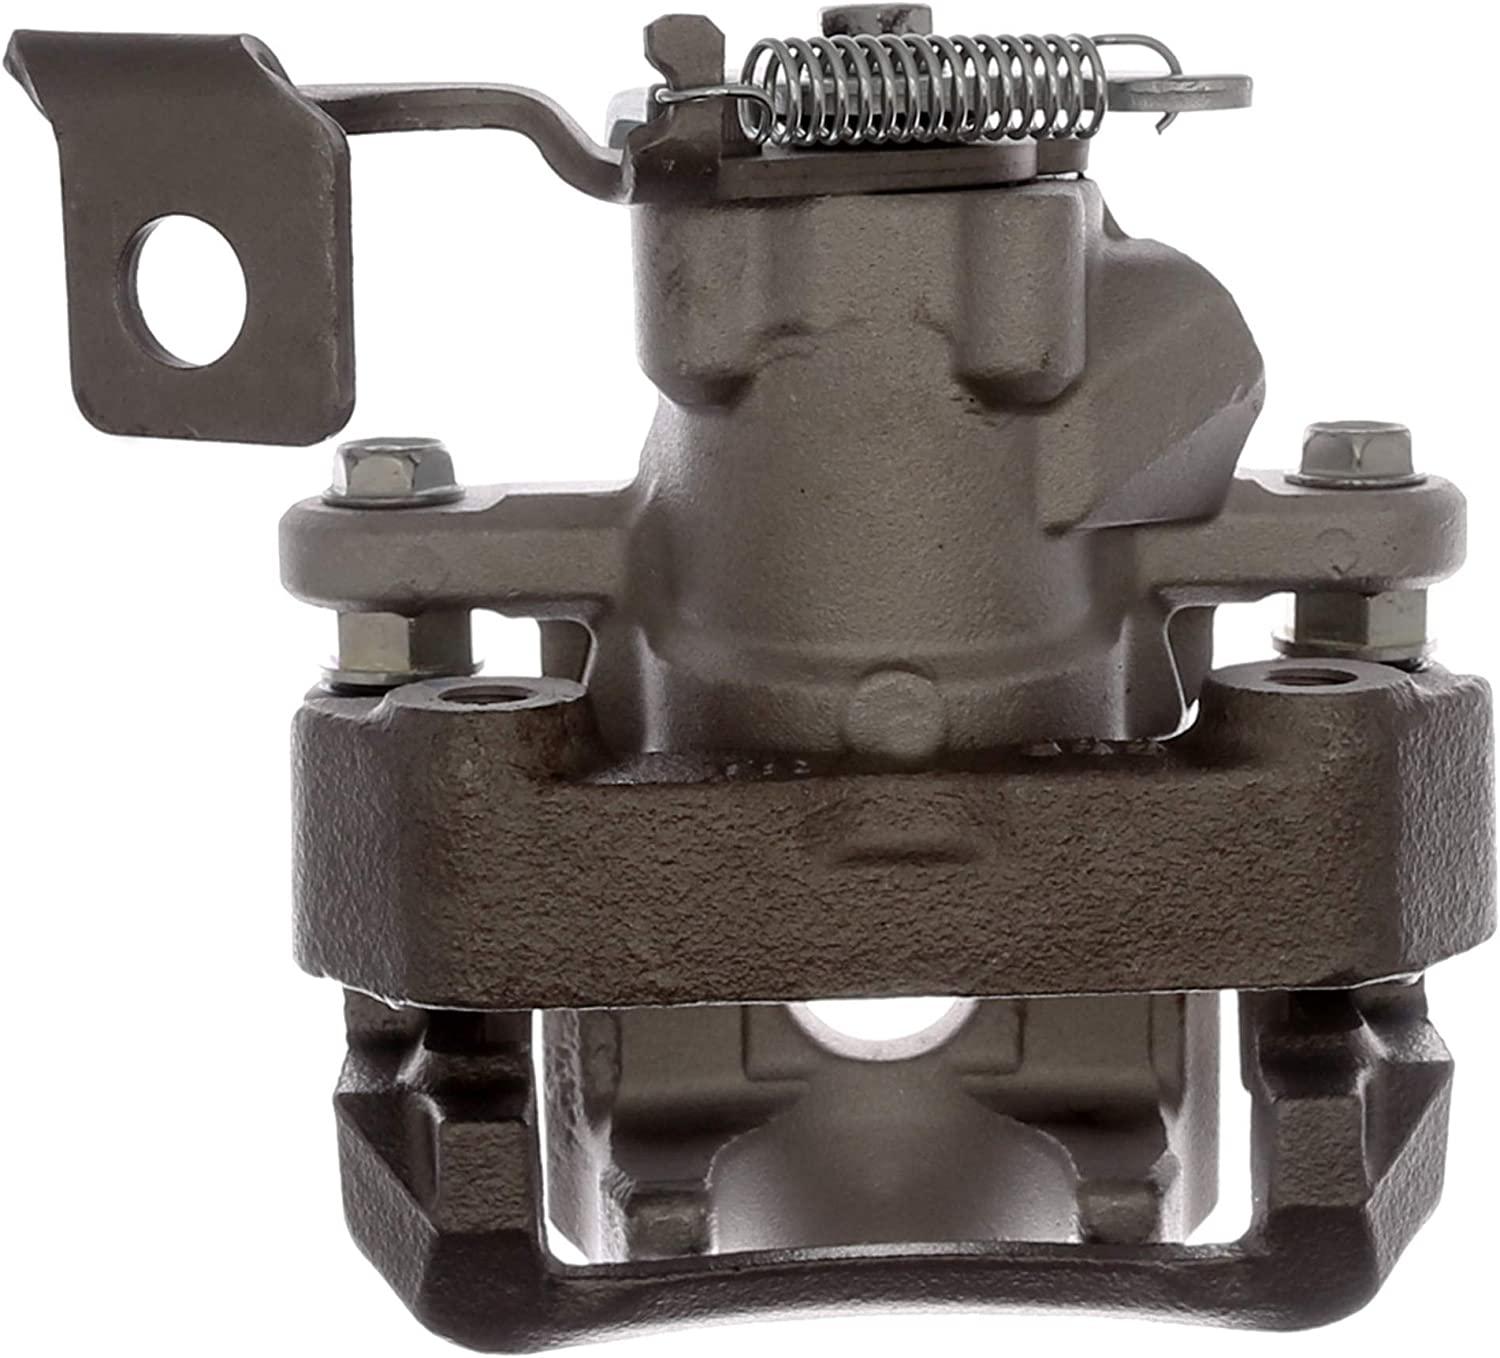 ACDelco 18FR12542 Professional Rear Driver Side Disc Brake Caliper Assembly without Pads Friction Ready Non-Coated Remanufactured